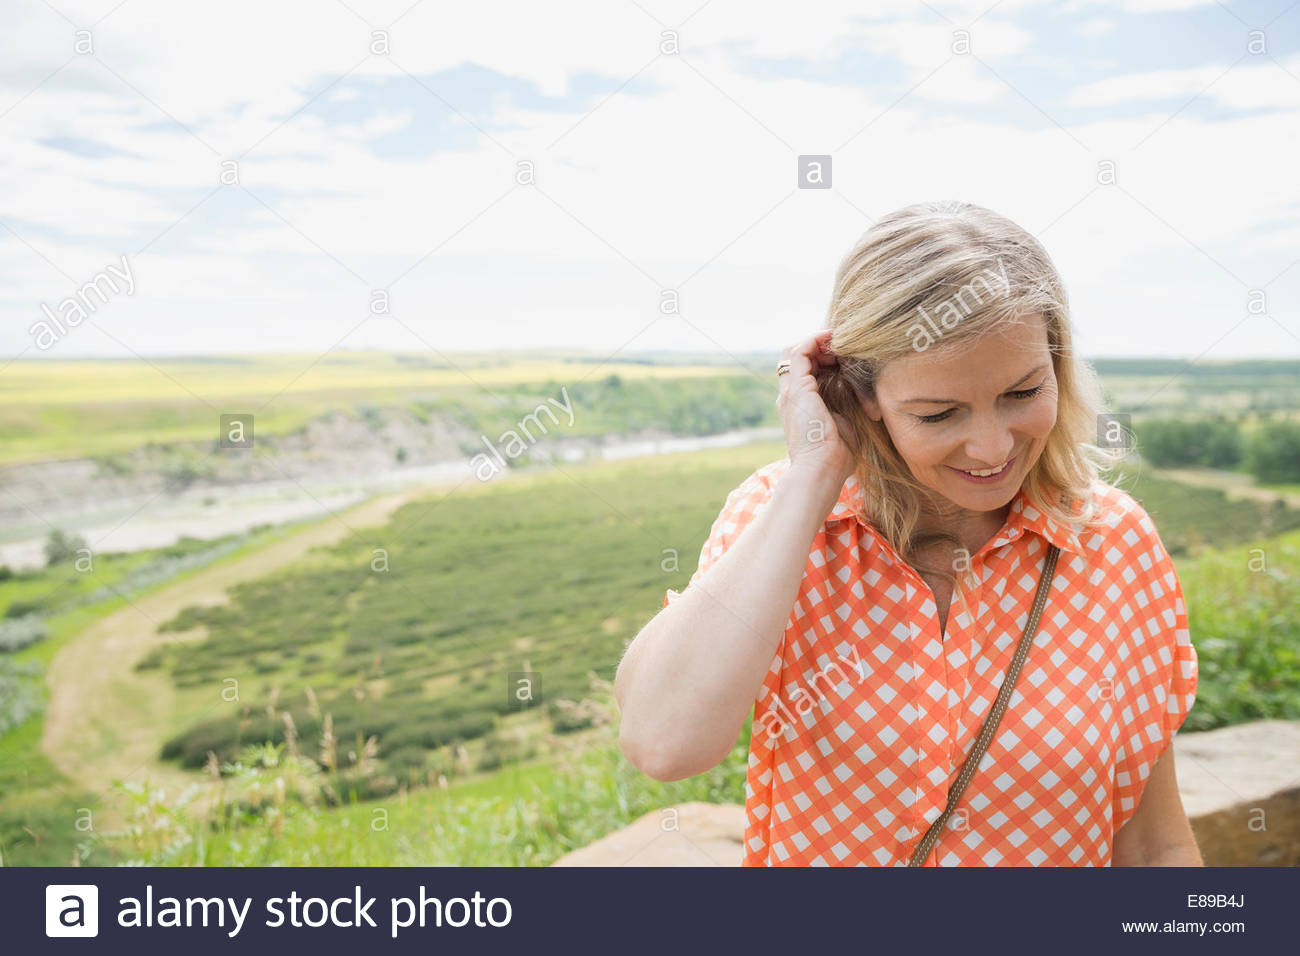 Smiling woman with countryside in background - Stock Image